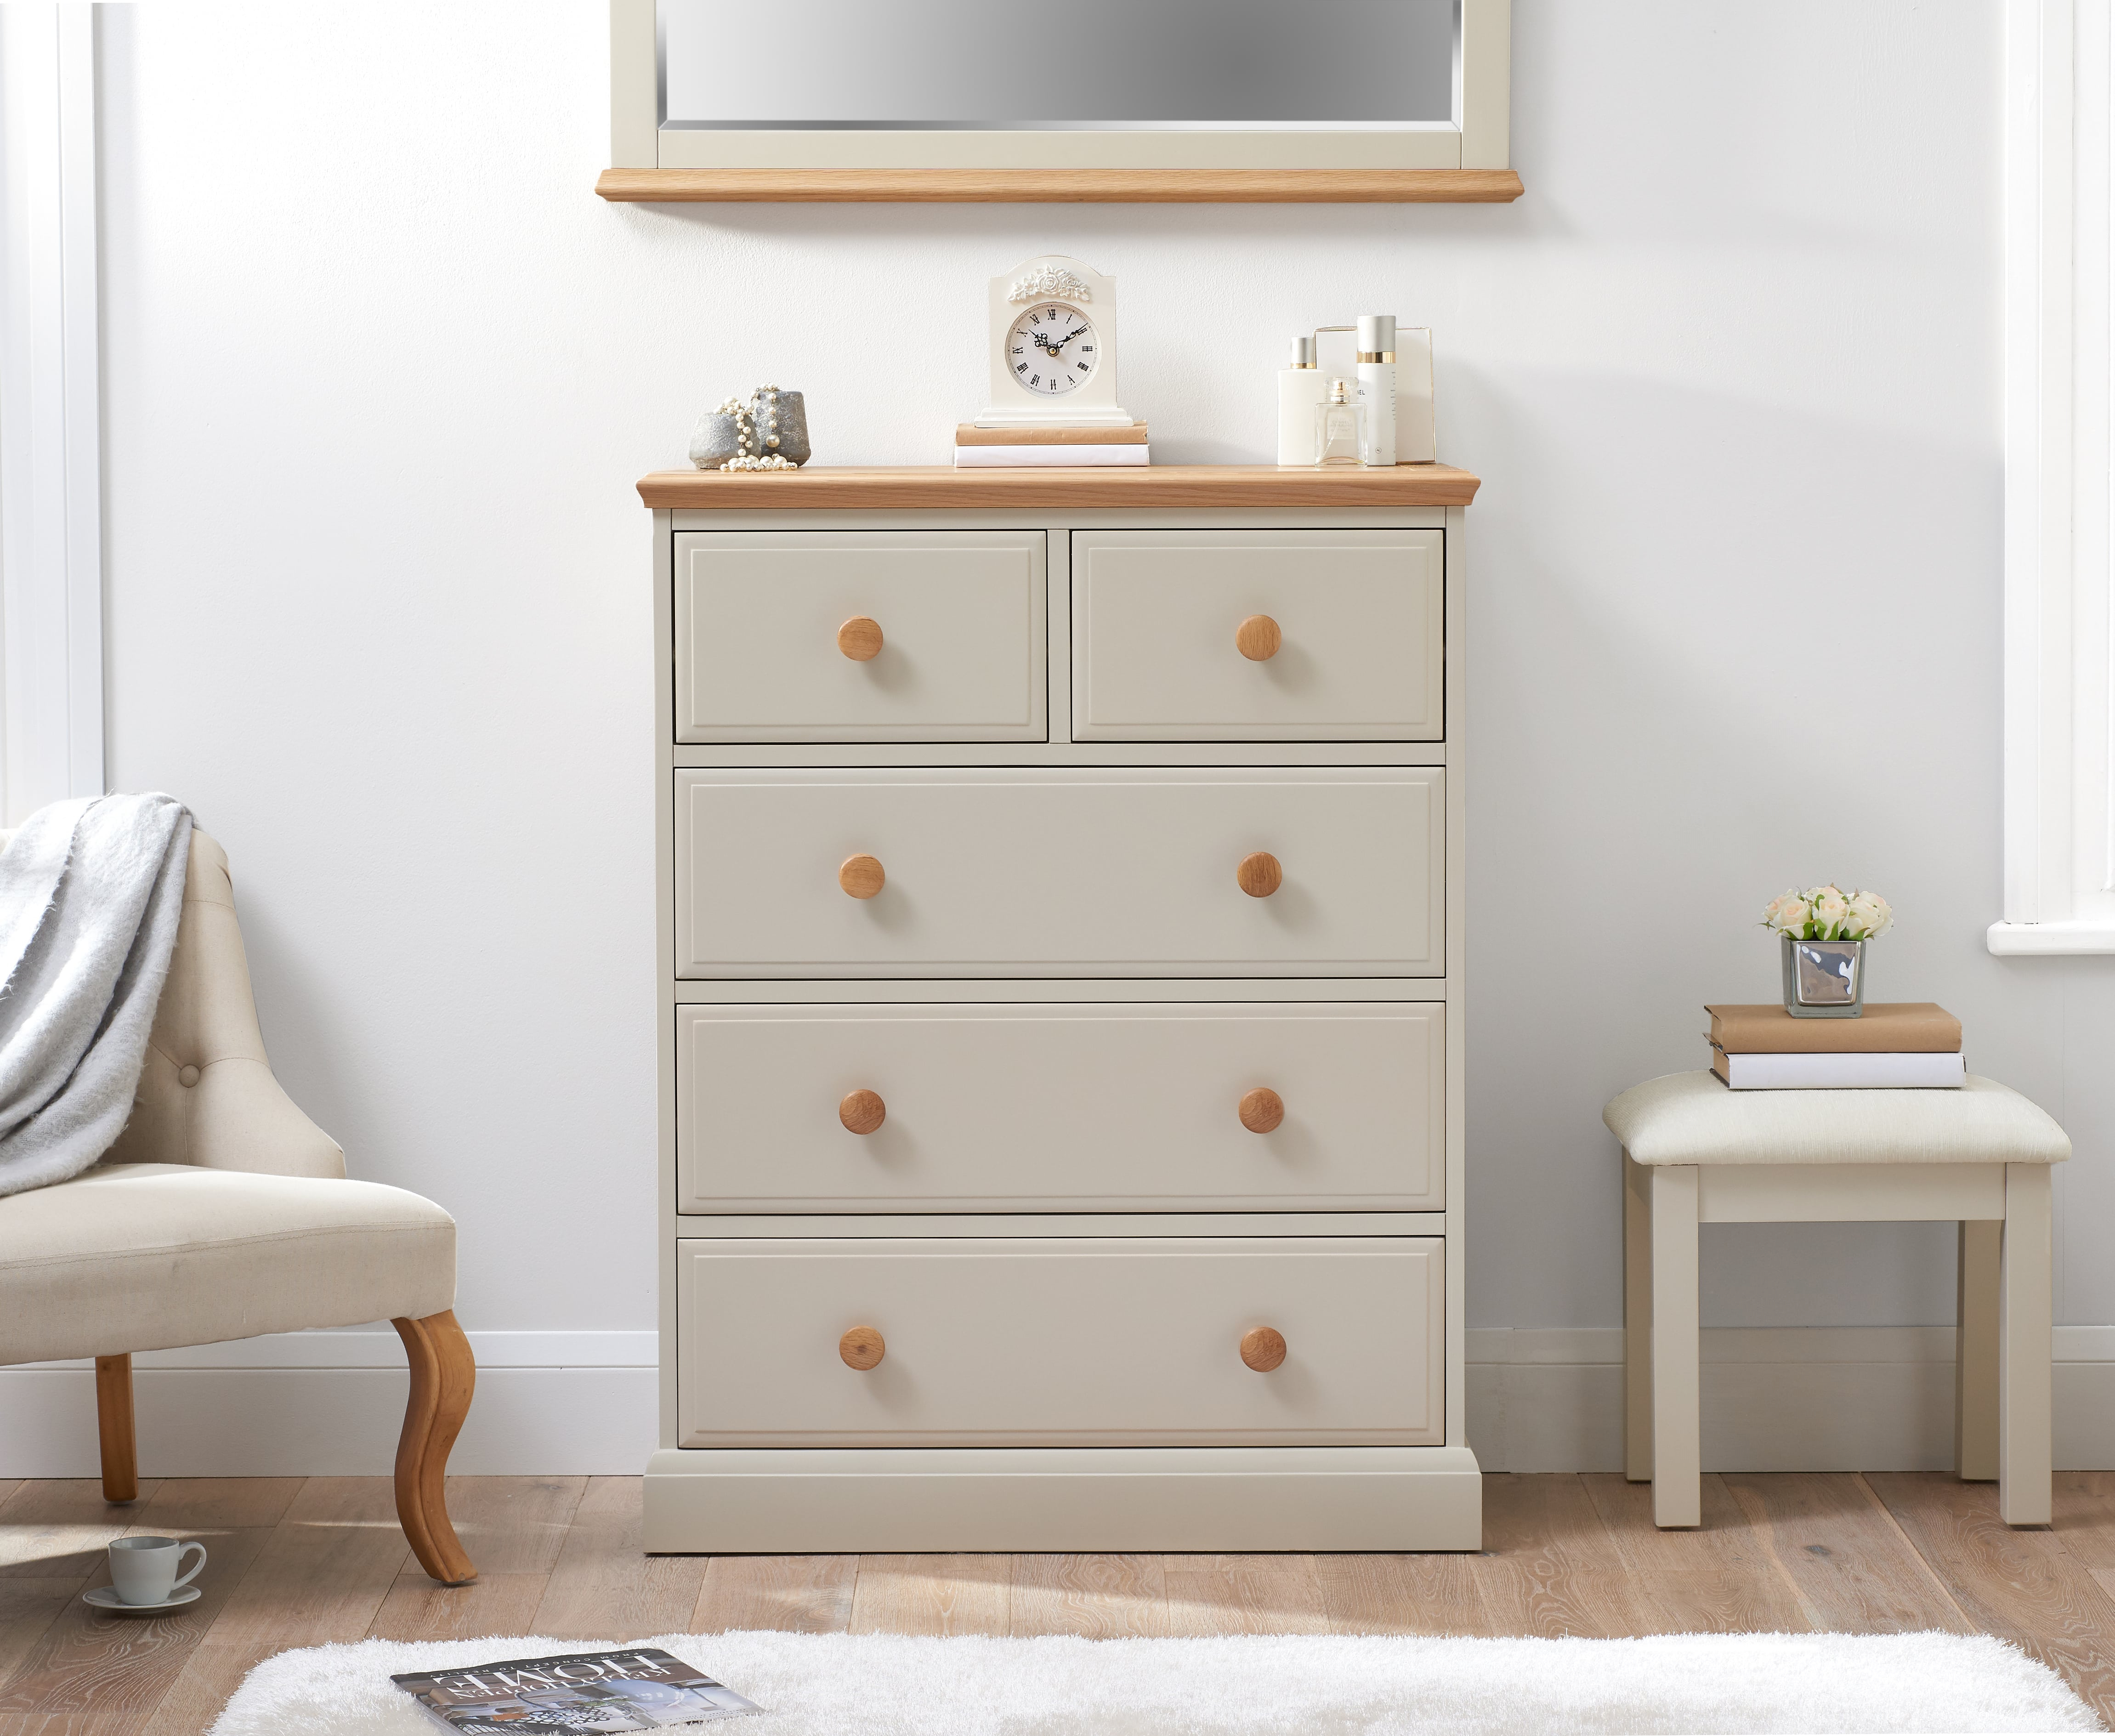 Image of Addison Oak and Stone Painted 2 Over 3 Chest of Drawers